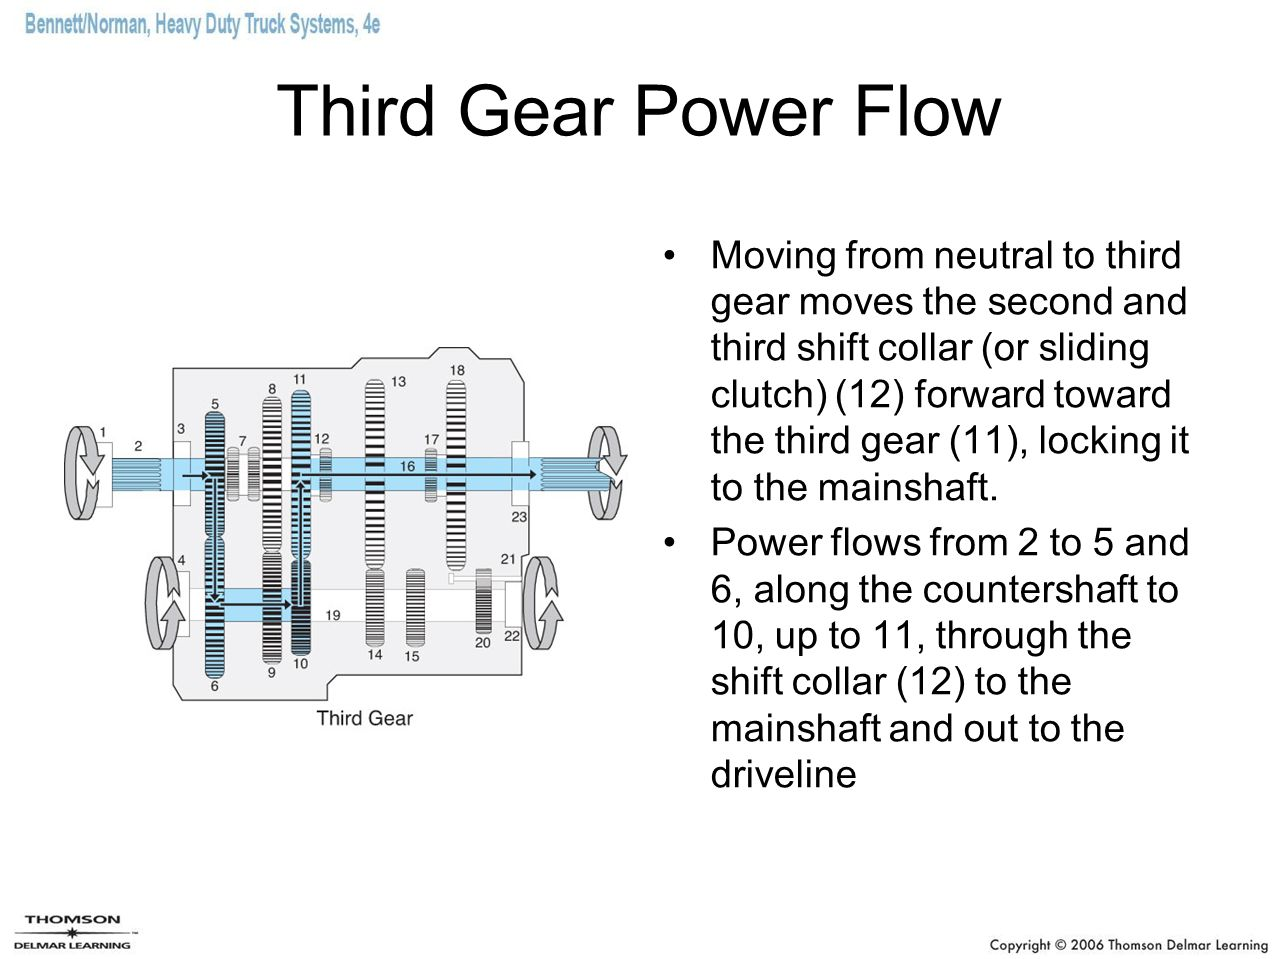 Third Gear Power Flow